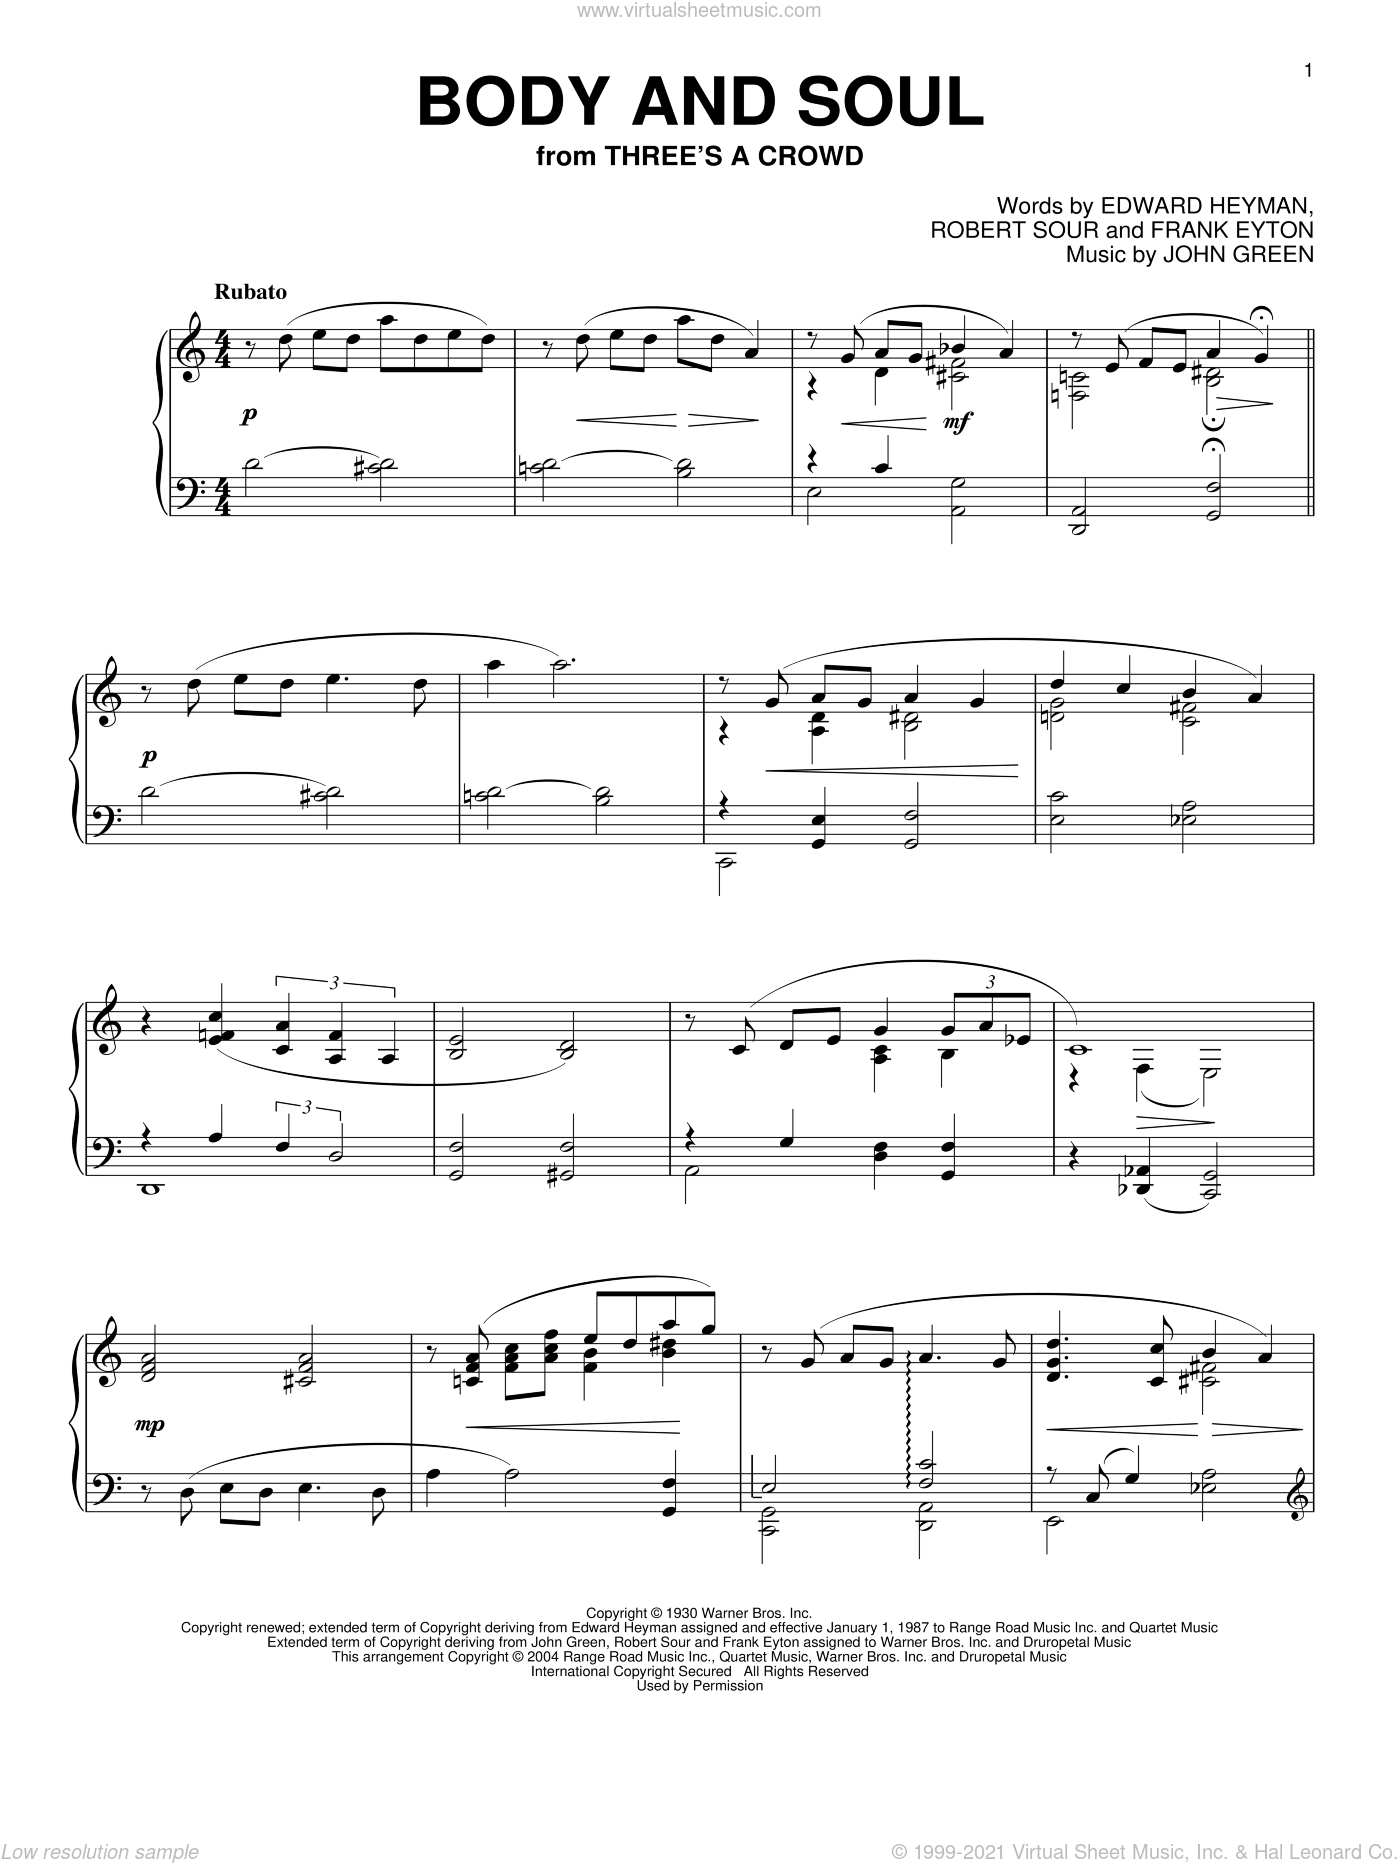 Body And Soul sheet music for piano solo by Edward Heyman, Phillip Keveren, Frank Eyton, Johnny Green and Robert Sour, intermediate skill level